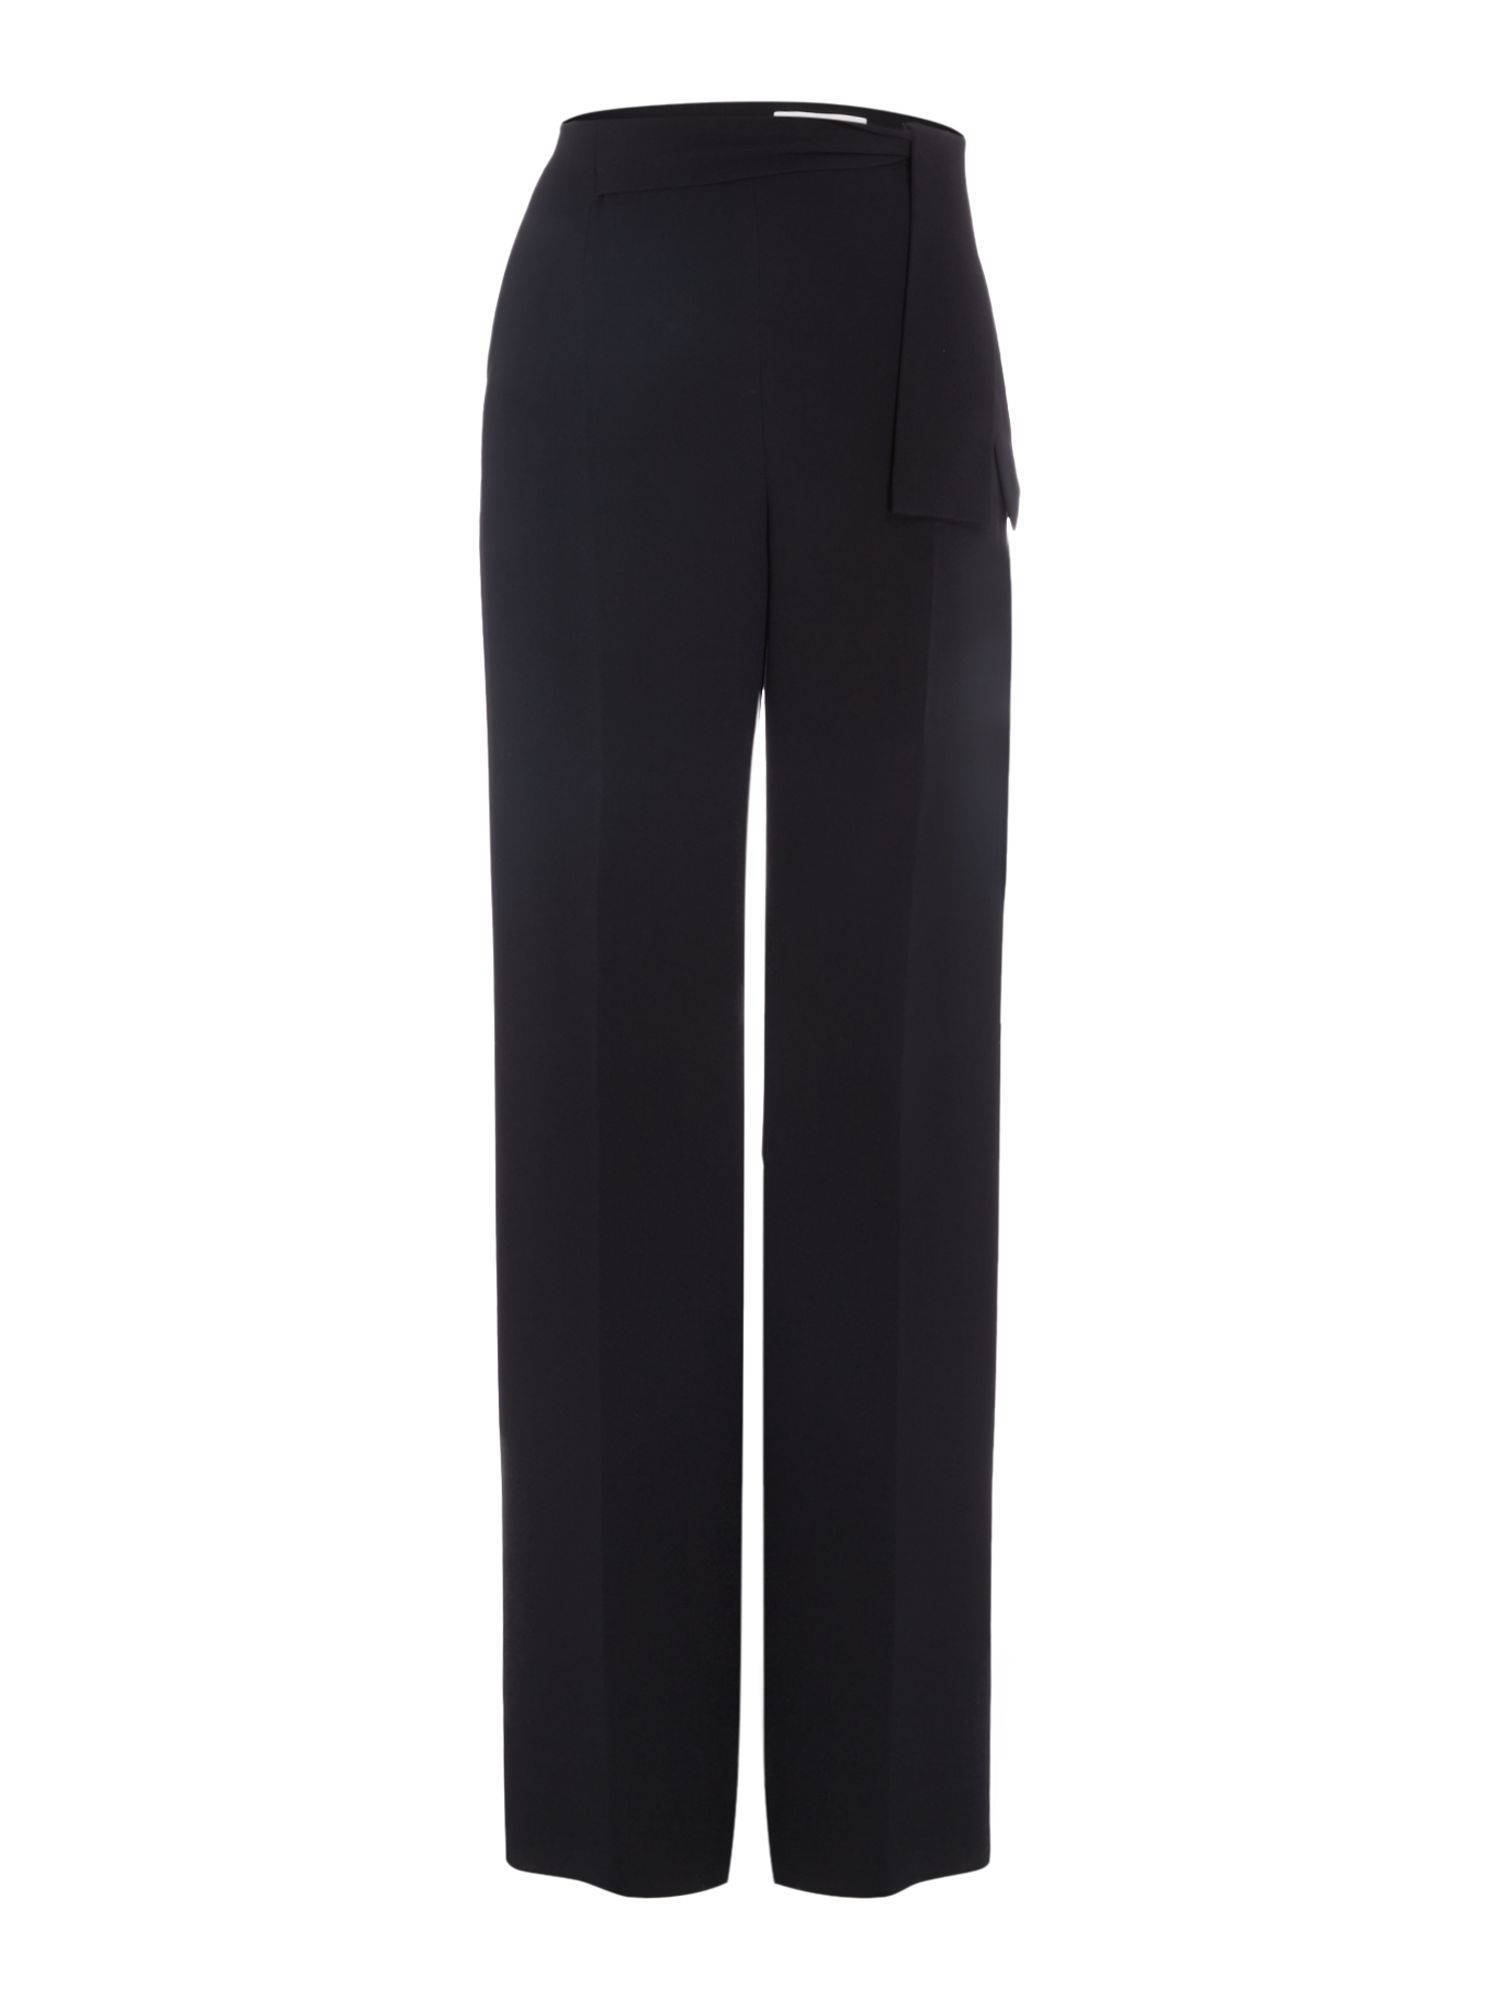 Hugo Boss Tasala wide leg trouser, Black